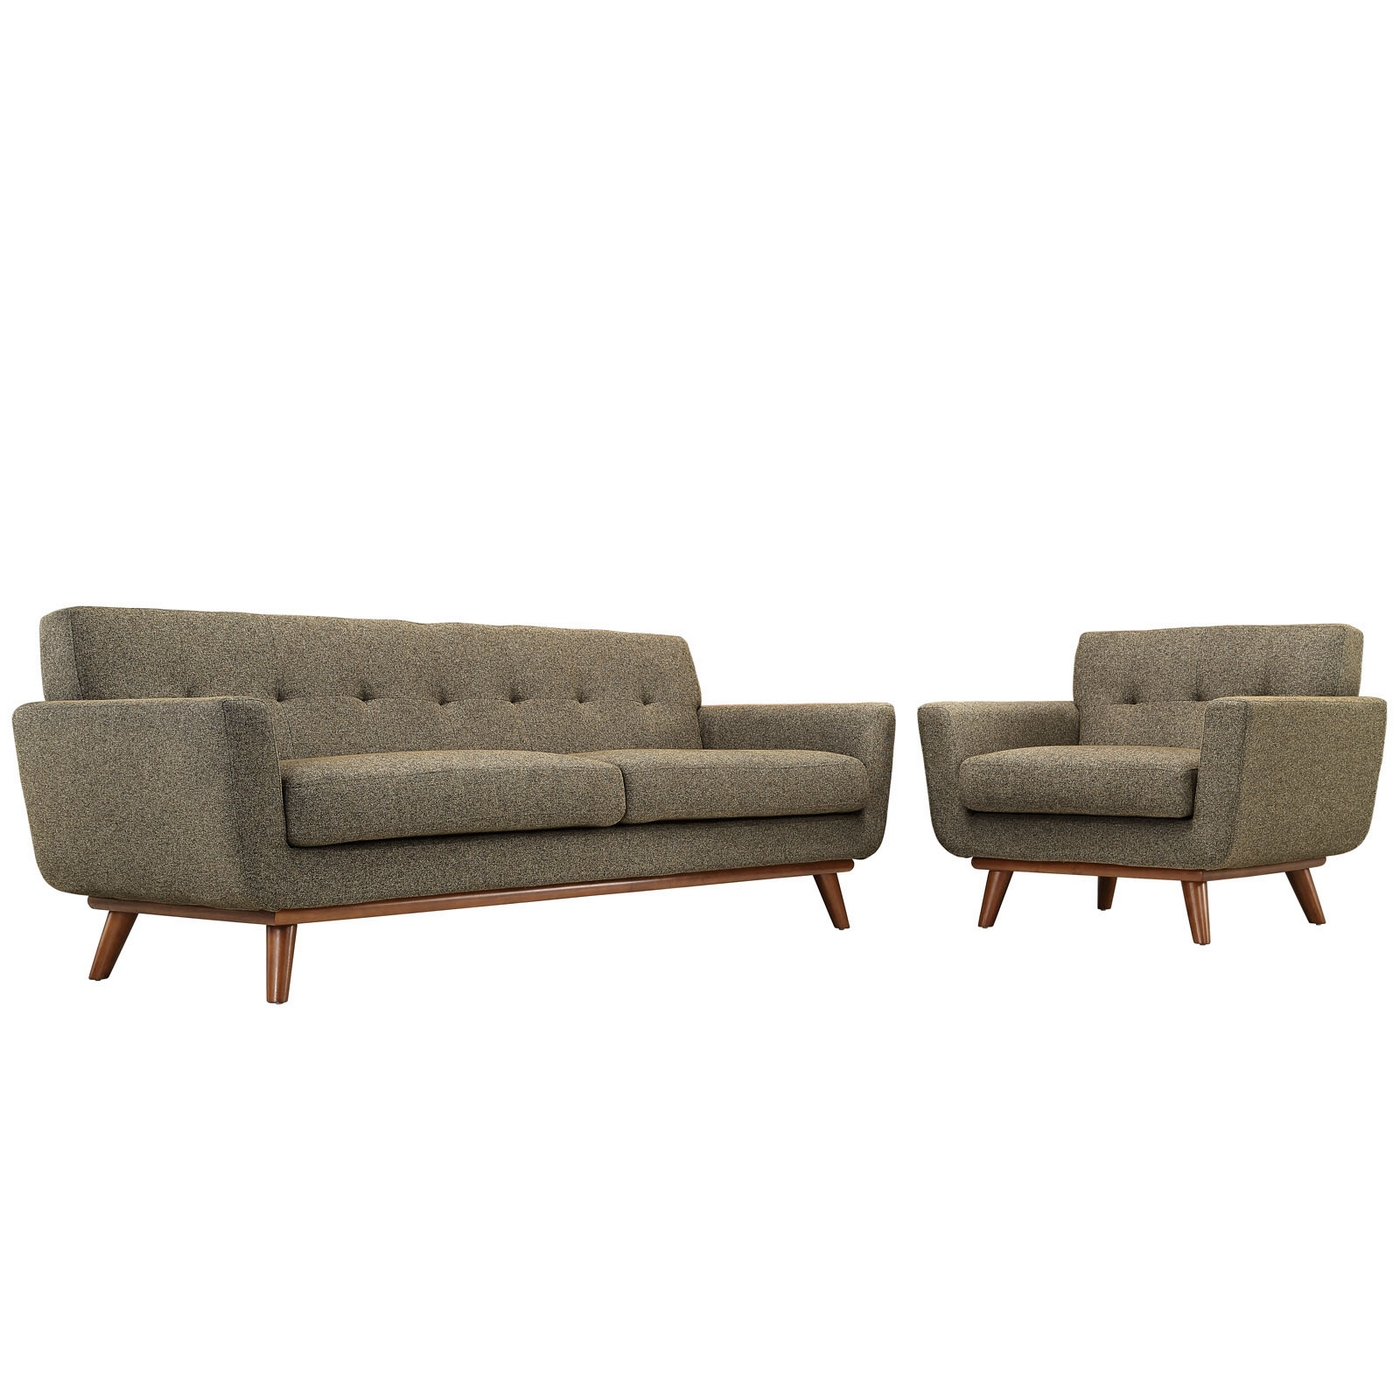 Engage Modern 2pc Upholstered Button Tufted Sofa Armchair Set Oatmeal